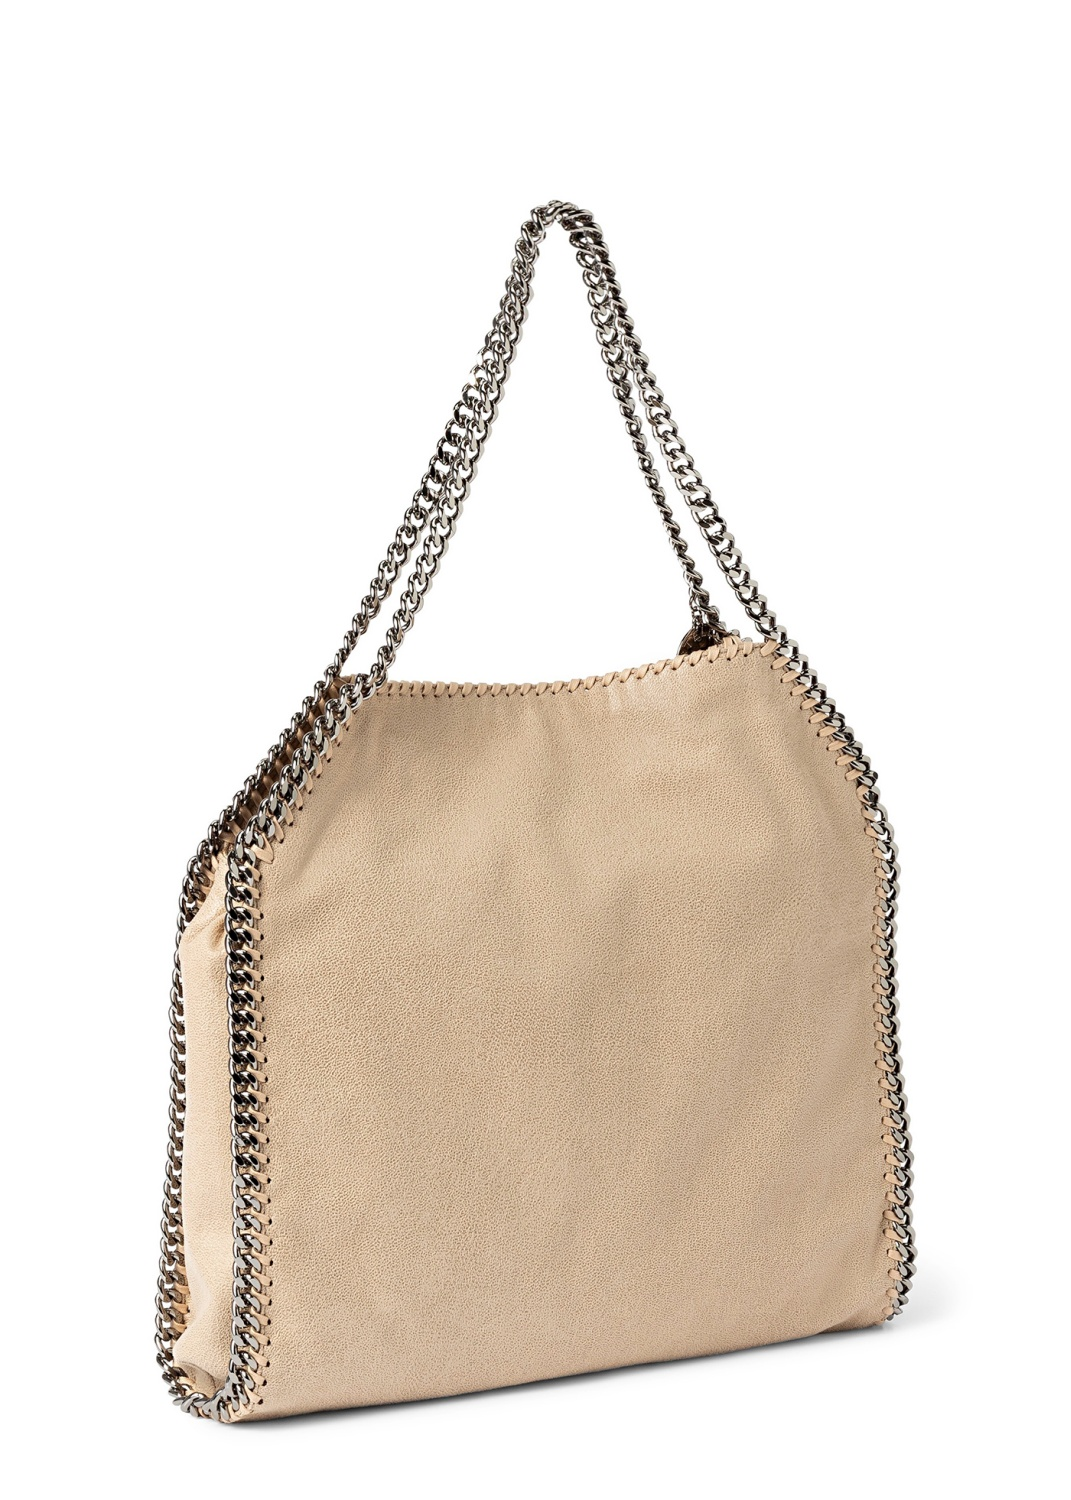 Falabella 2 Chain Hobo image number 1